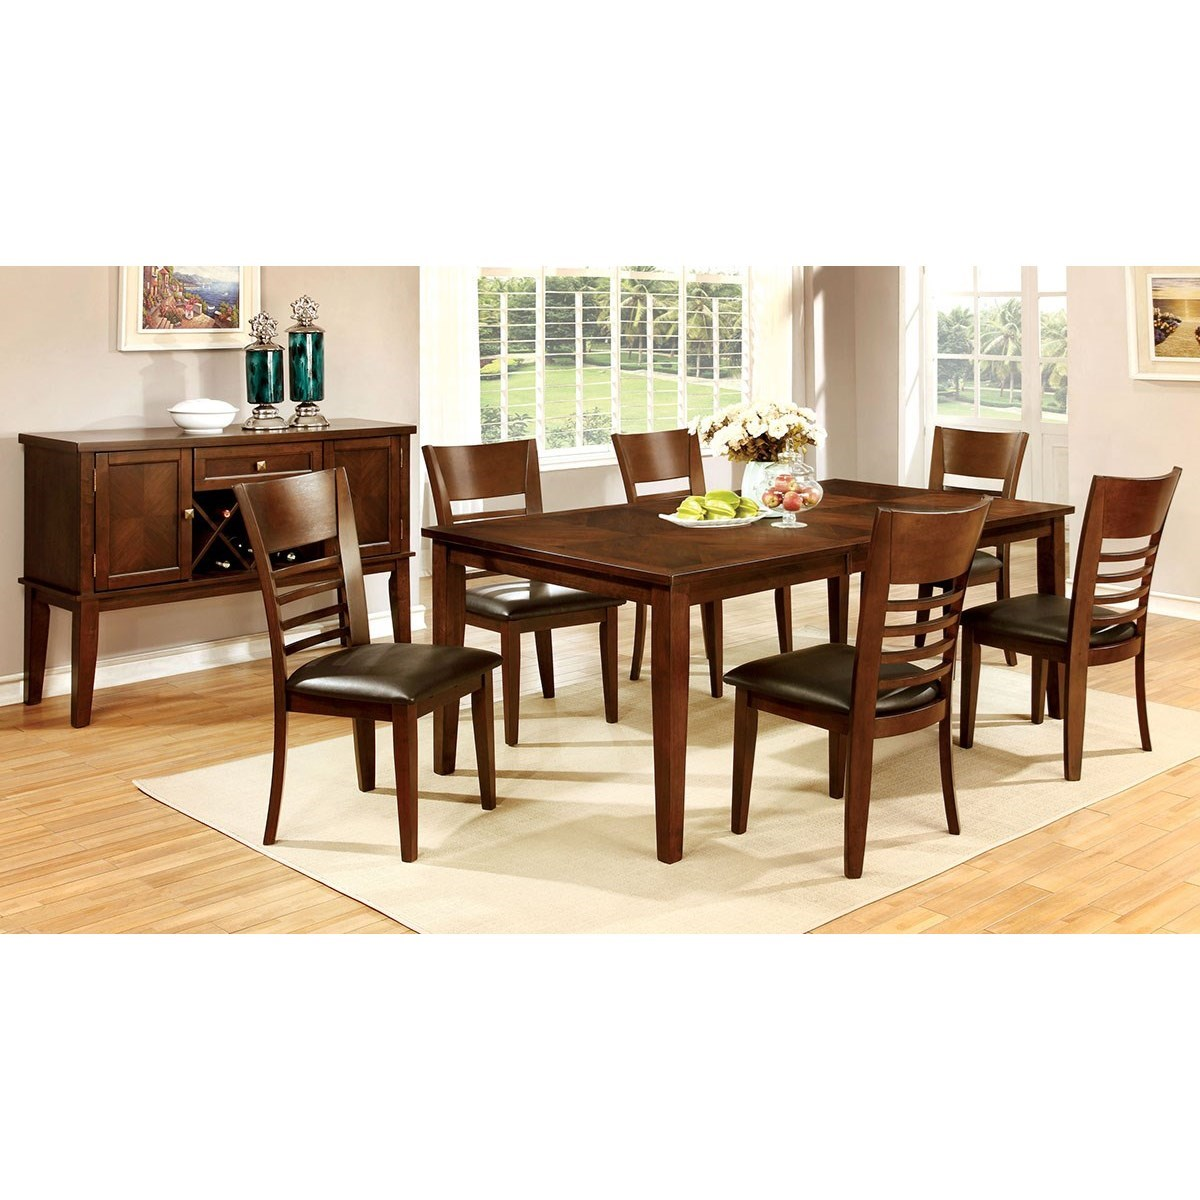 Levitz Home Furnishings: Furniture Of America Hillsview CM3916T-78-7PC Dining Table